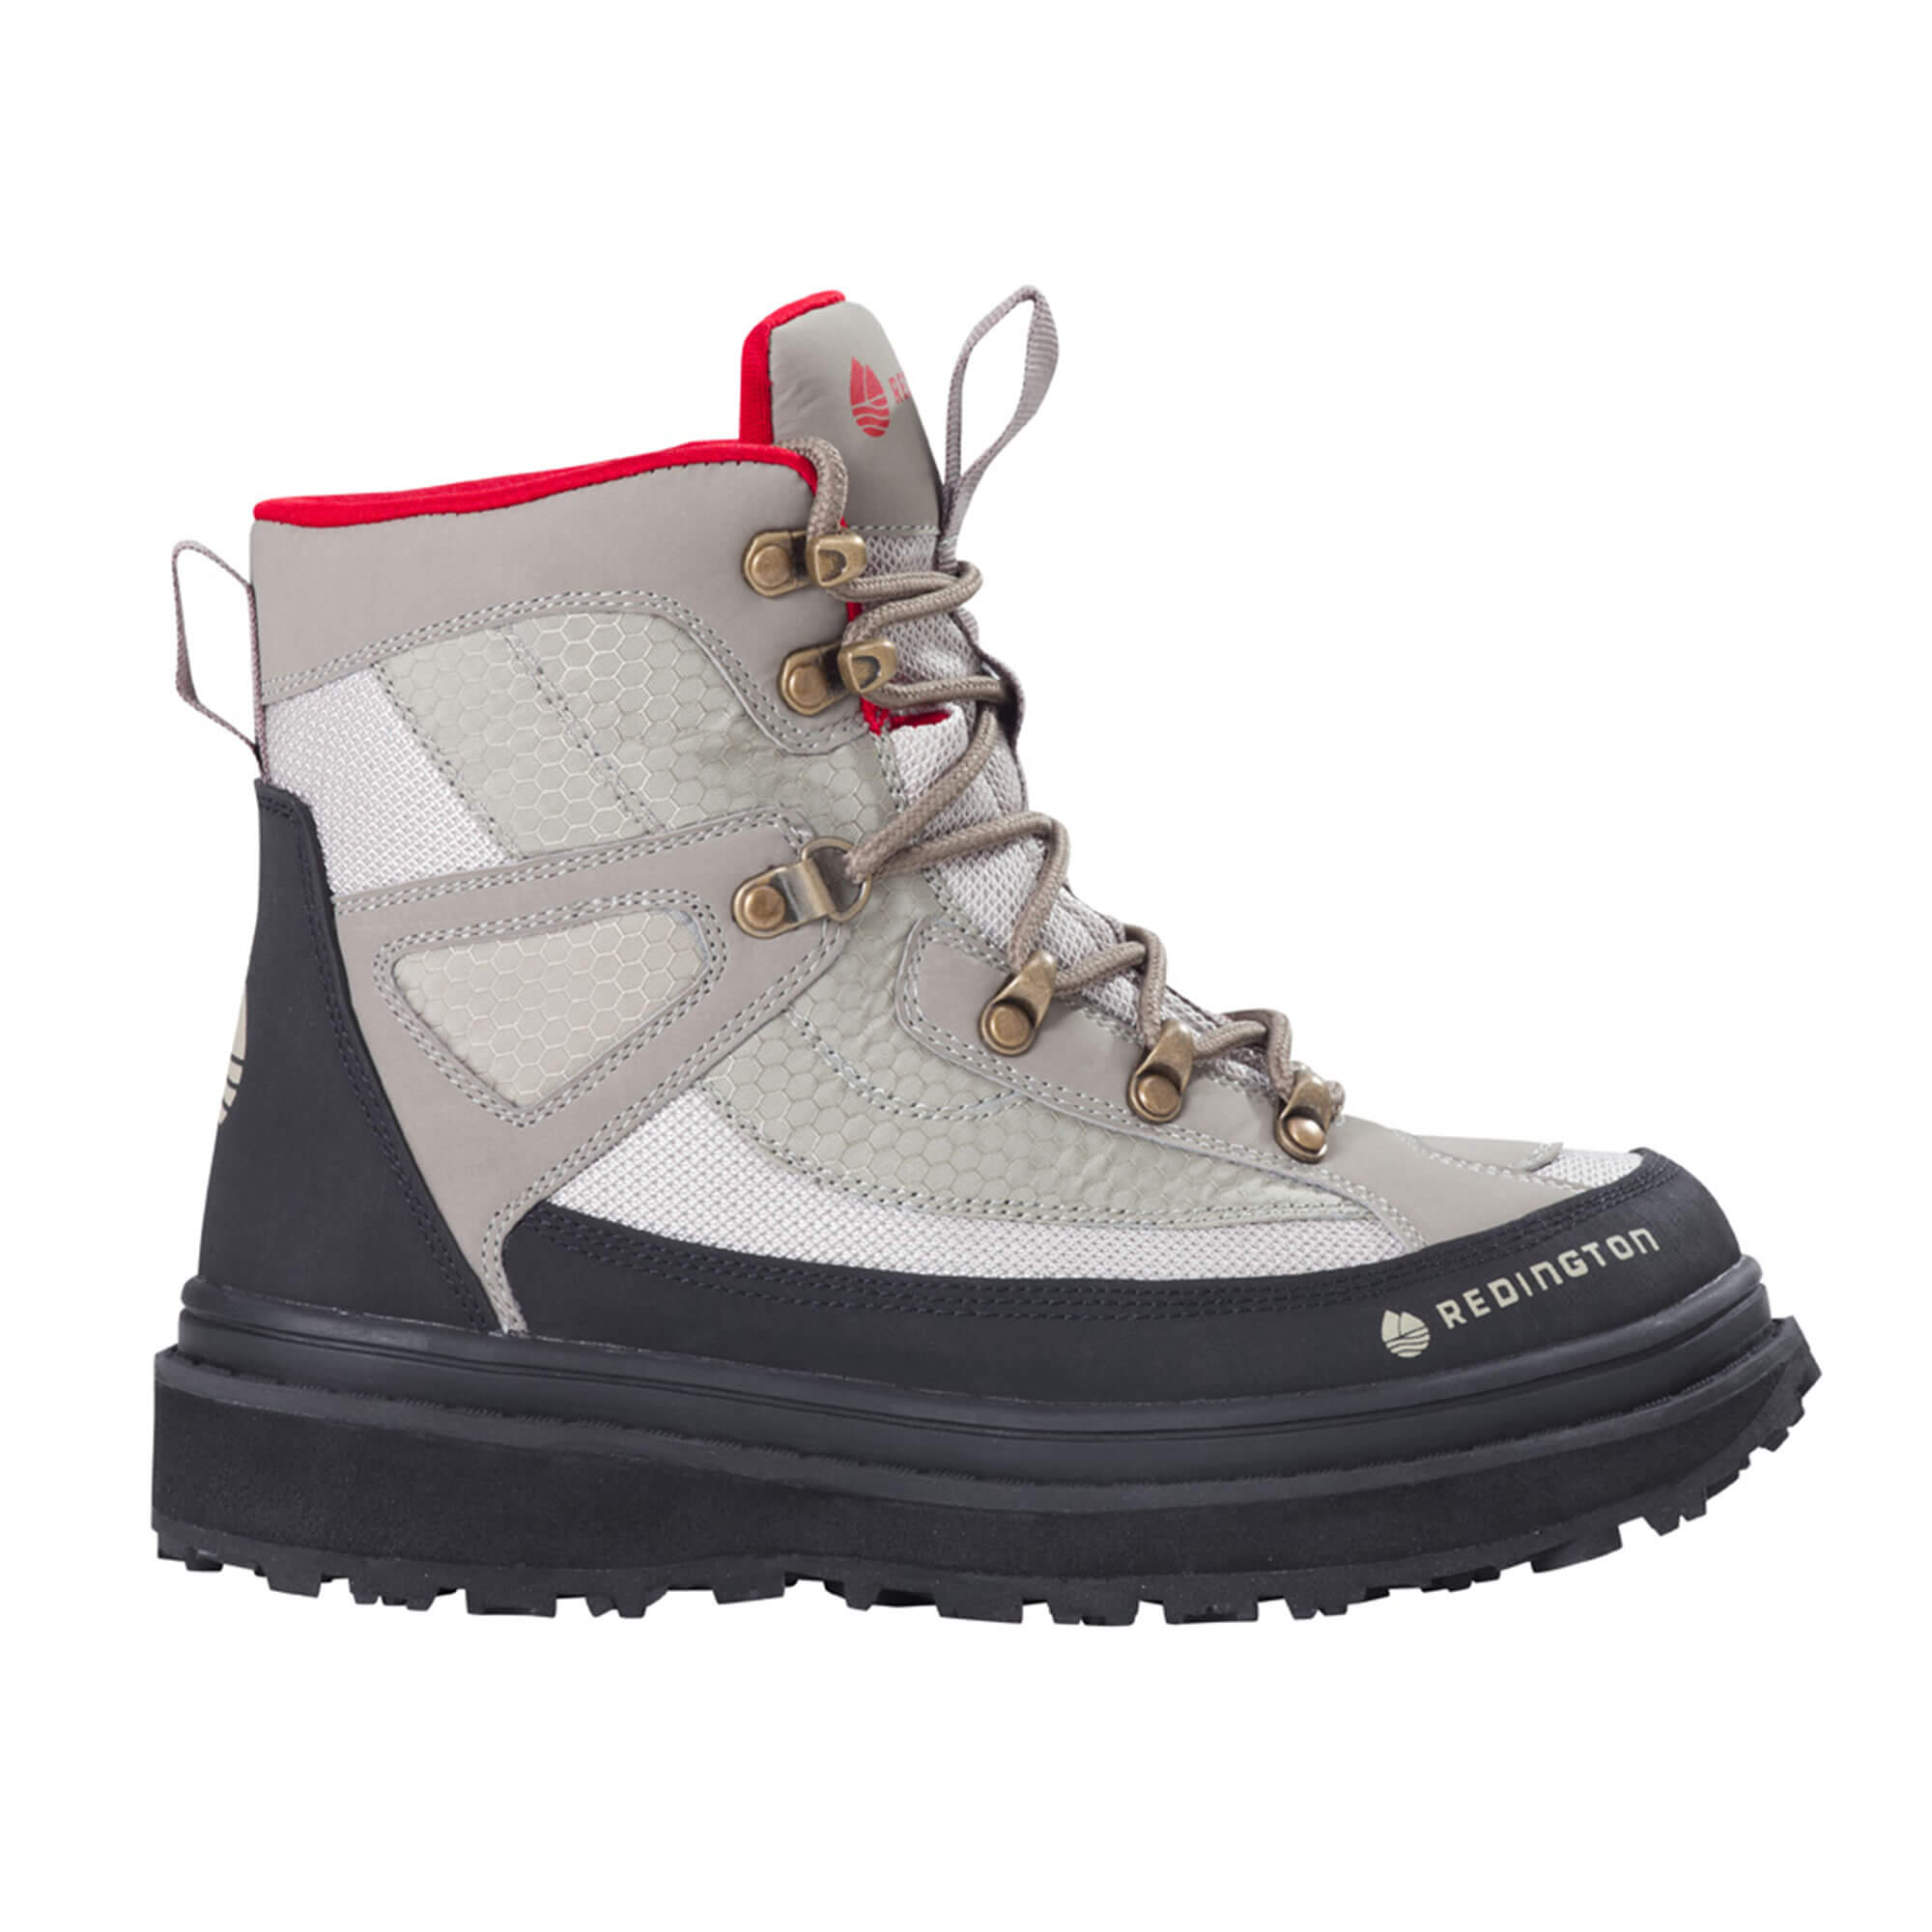 Redington Women's Willow River Wading Boot